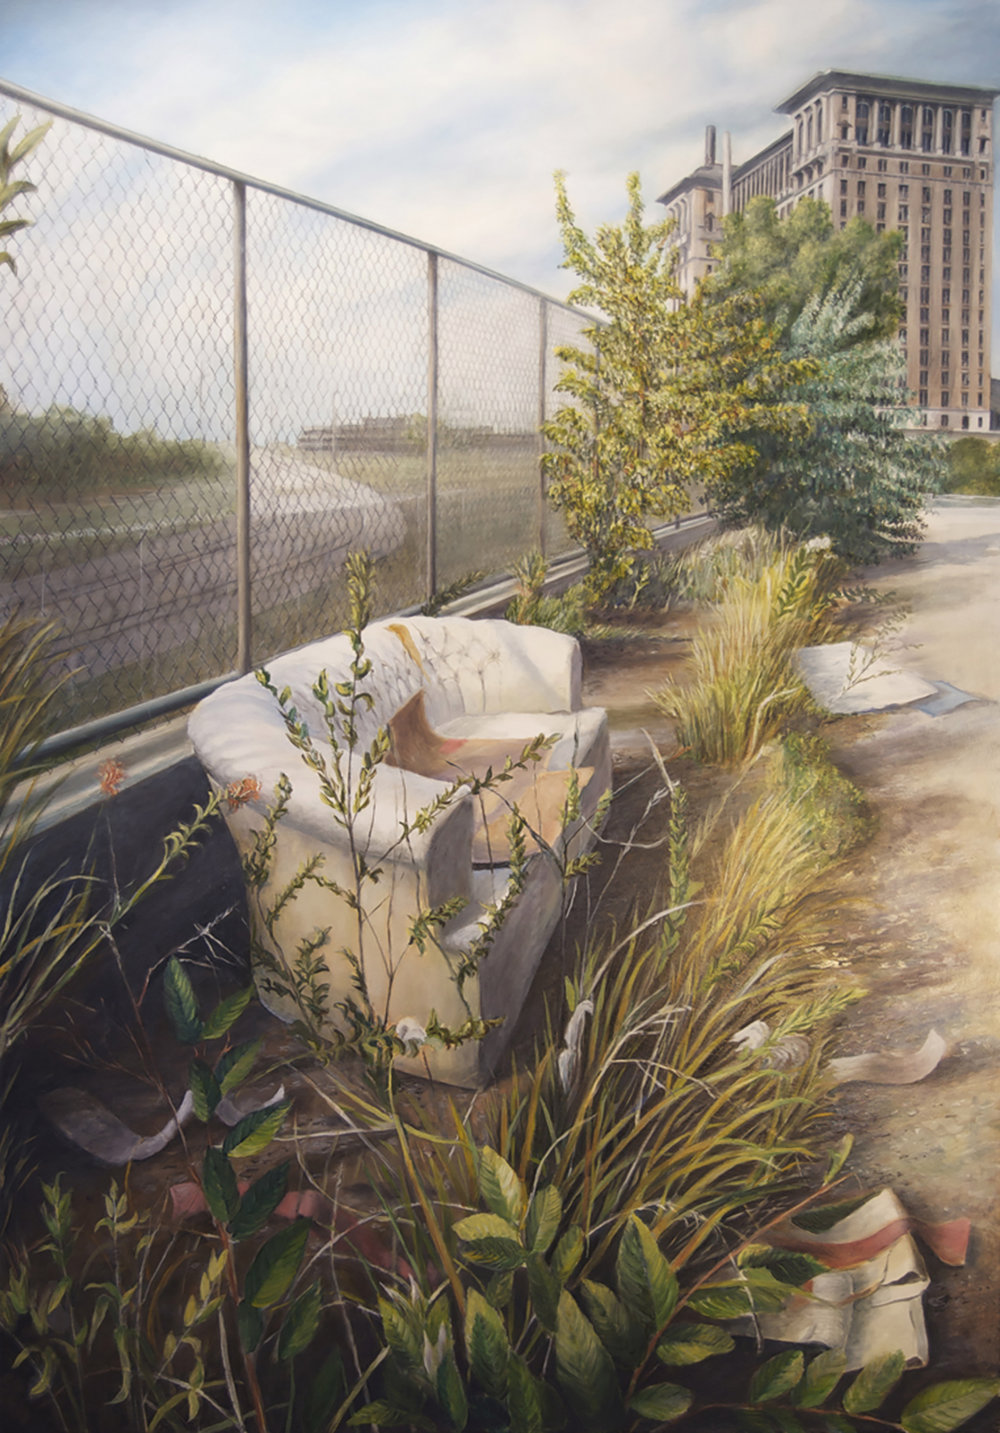 Couch and Garbage near    Michigan Terminal, Detroit   2011  Oil on canvas  42 x 28 inches